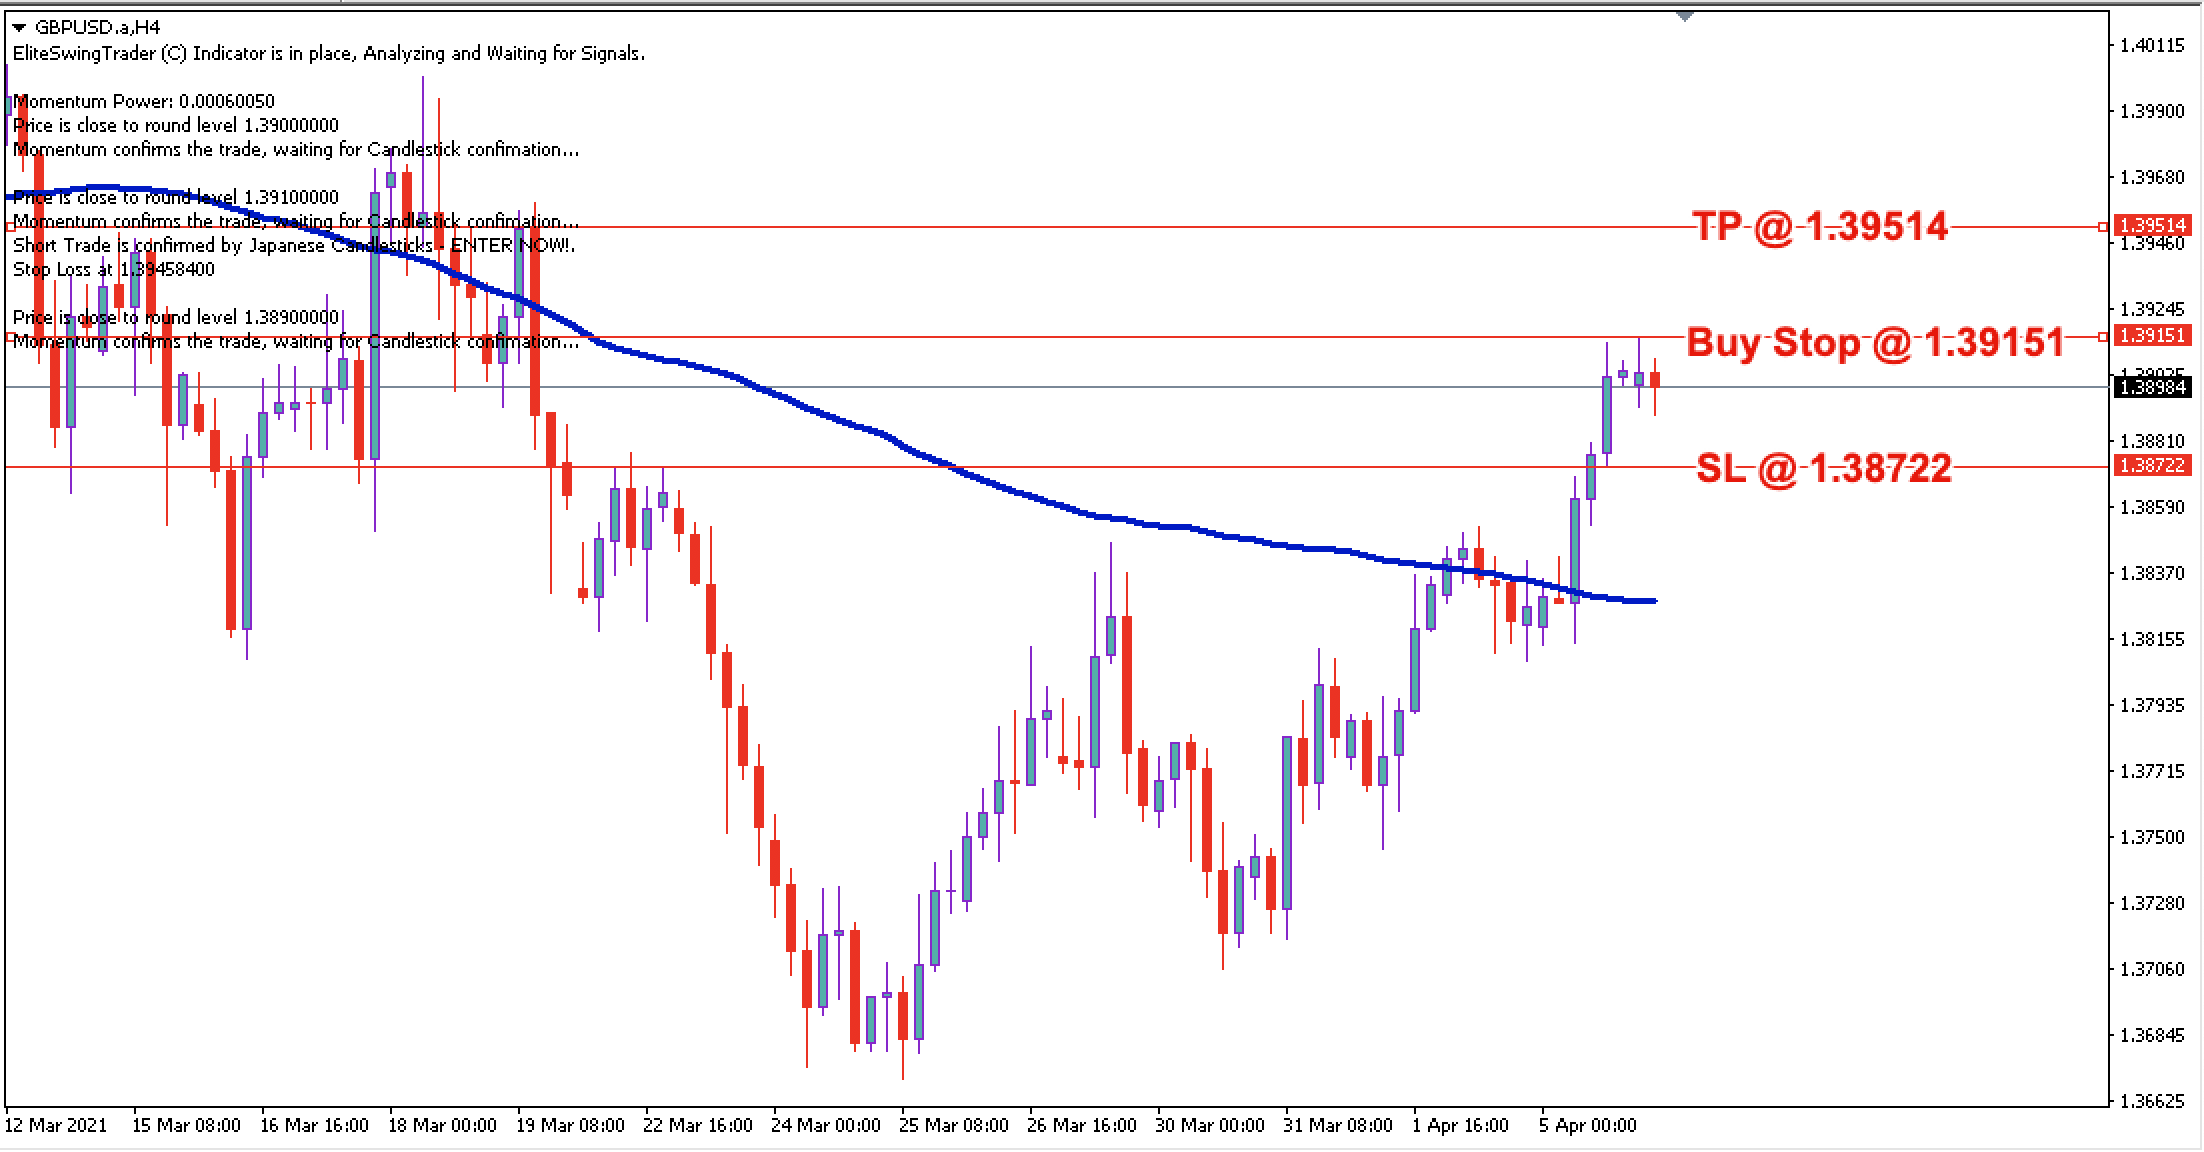 GBP/USD Daily Price Forecast - 6th April 2021